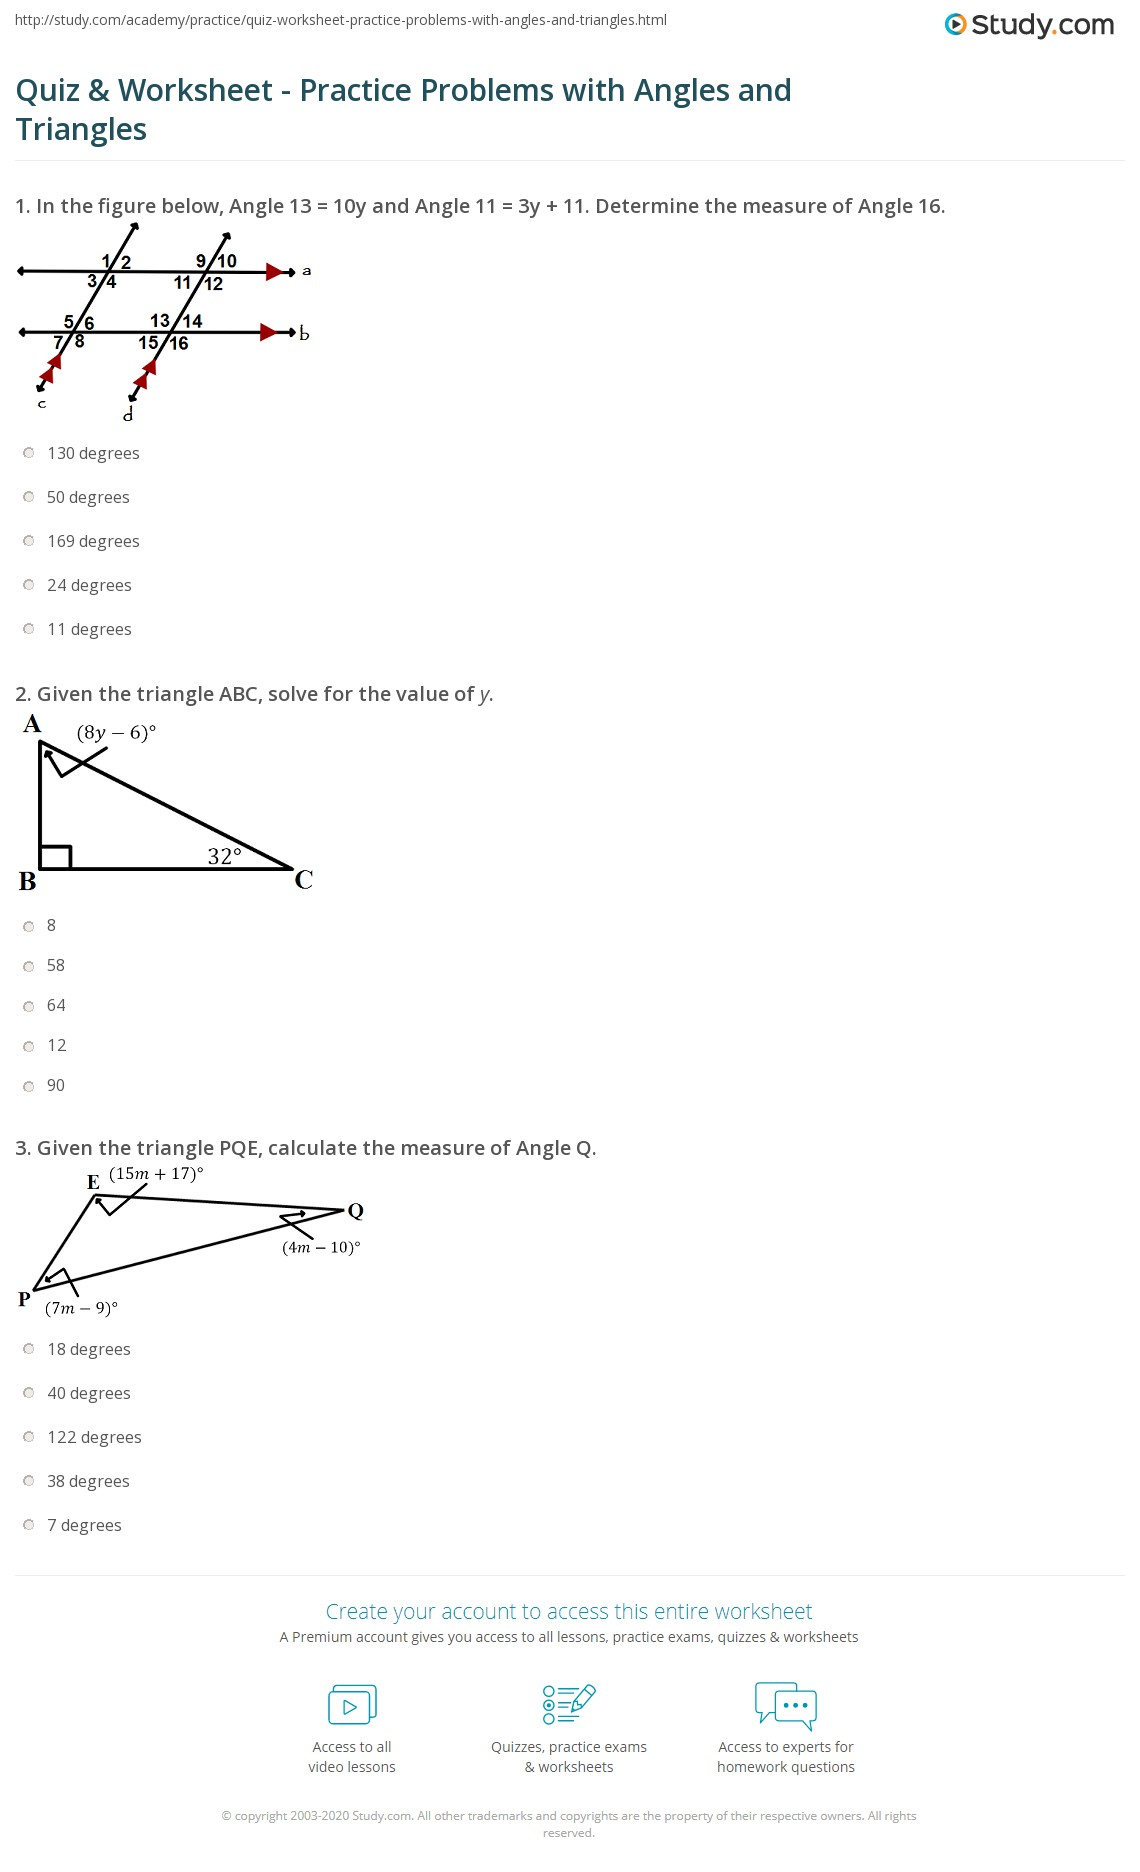 Quiz W Ksheet Pr Ctice Problems With Ngles Nd Tri Ngles